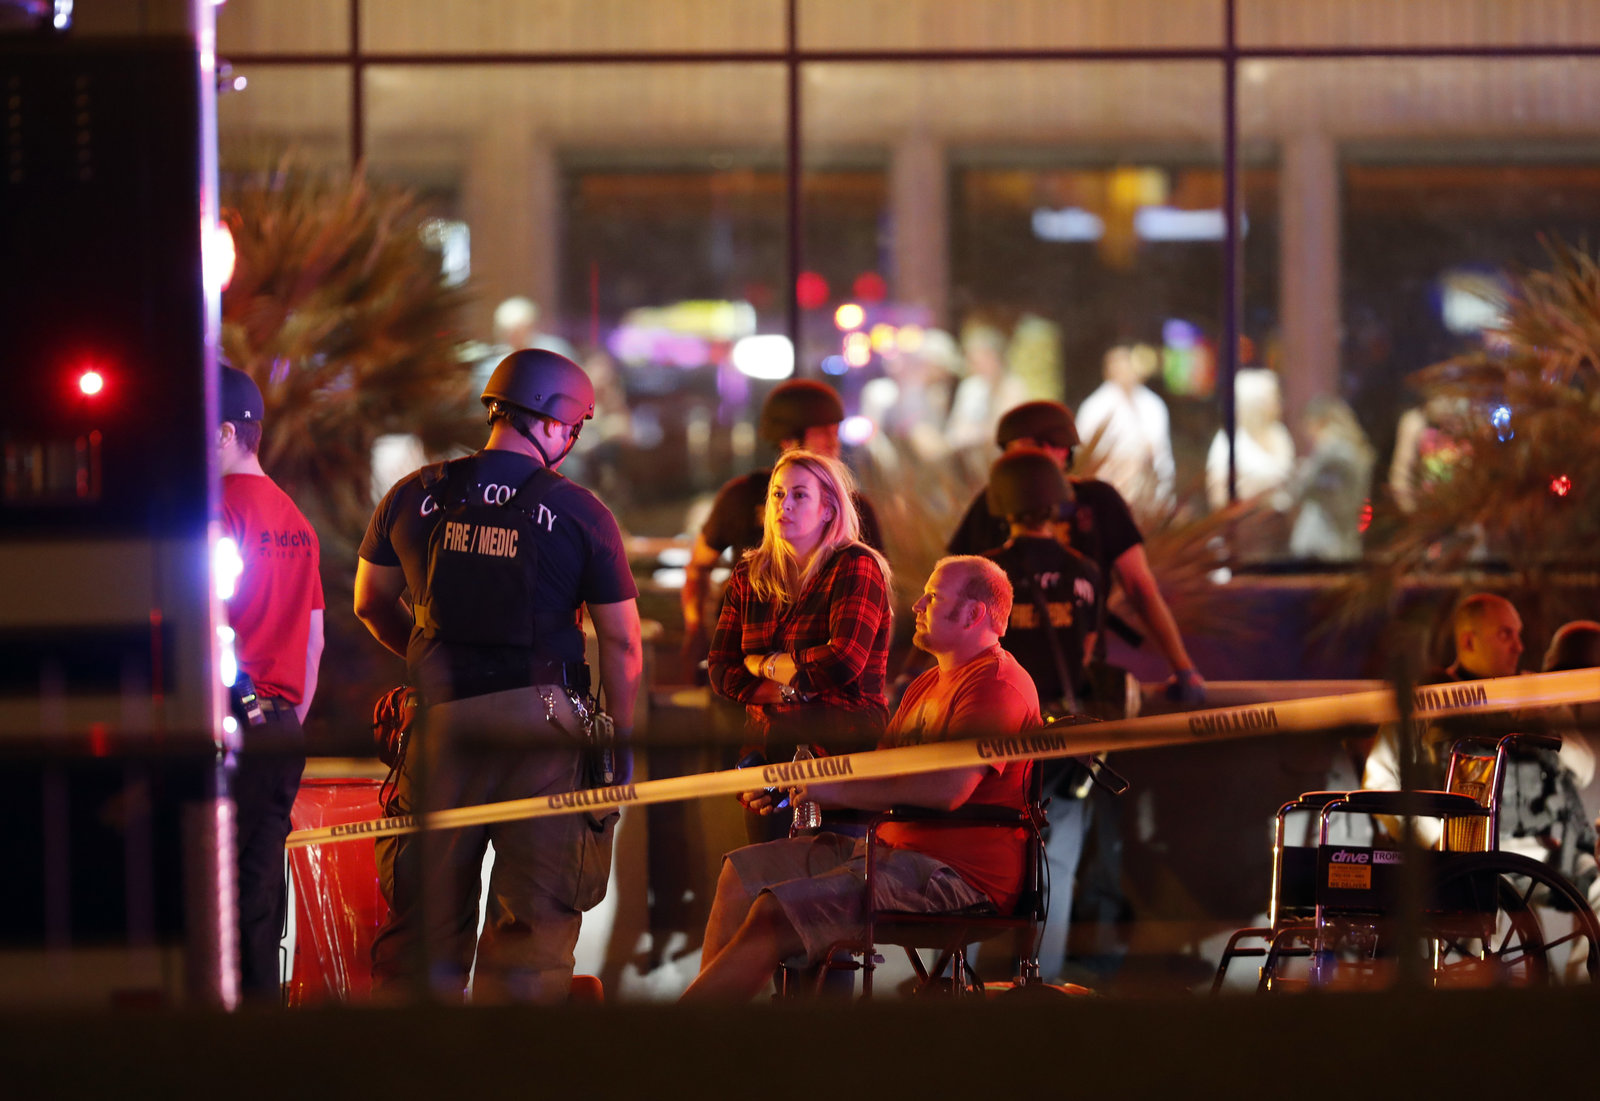 People wait in a medical staging area on Monday, after a mass shooting during a music festival Sunday on the Las Vegas Strip. Police say Stephen Paddock fired down at the crowd of more than 22,000 people from his room on the 32nd floor of the Mandalay Bay Resort and Casino. (Steve Marcus/Courtesy of Las Vegas Sun)